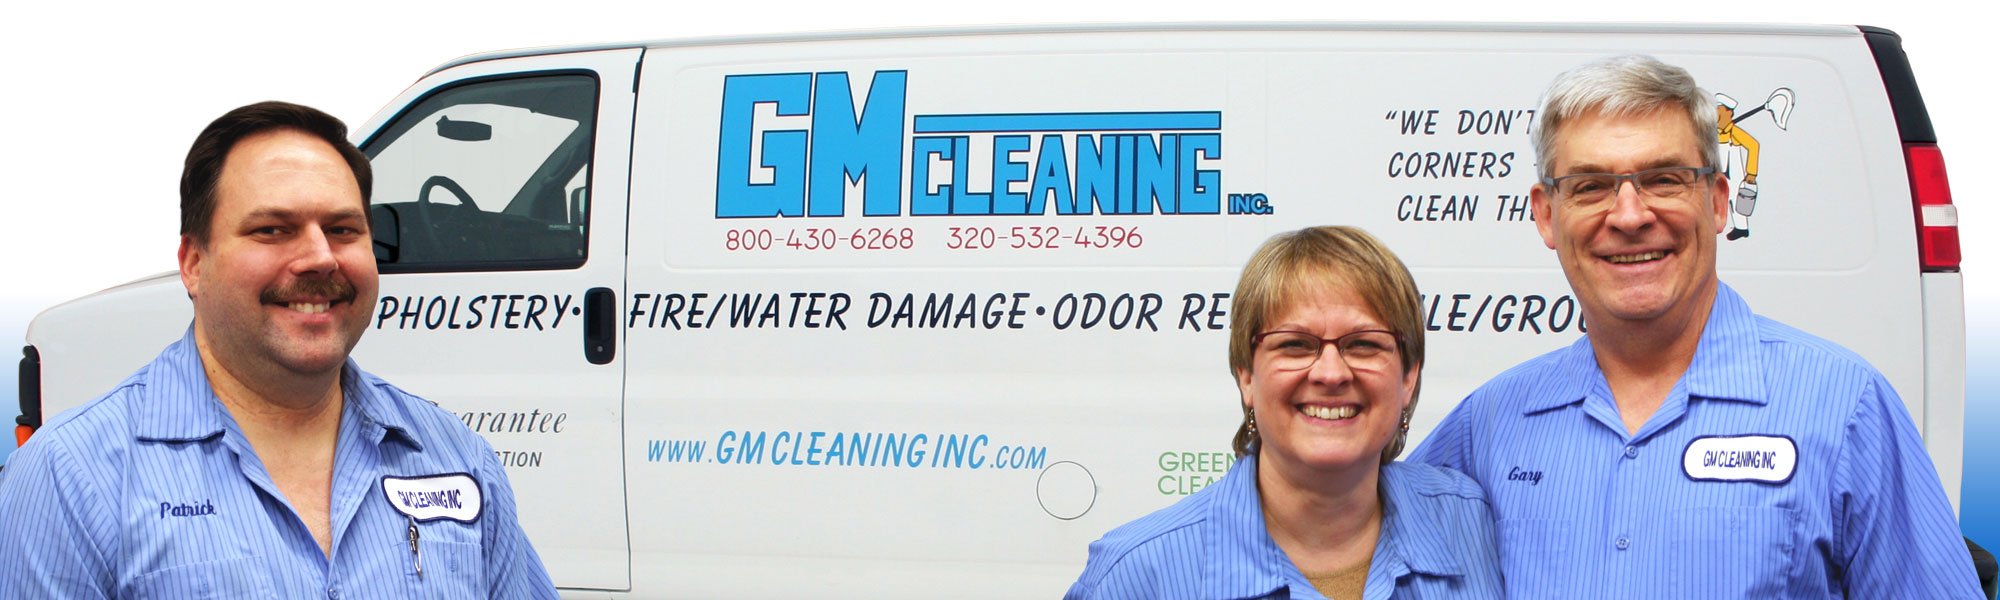 GM Cleaning Inc